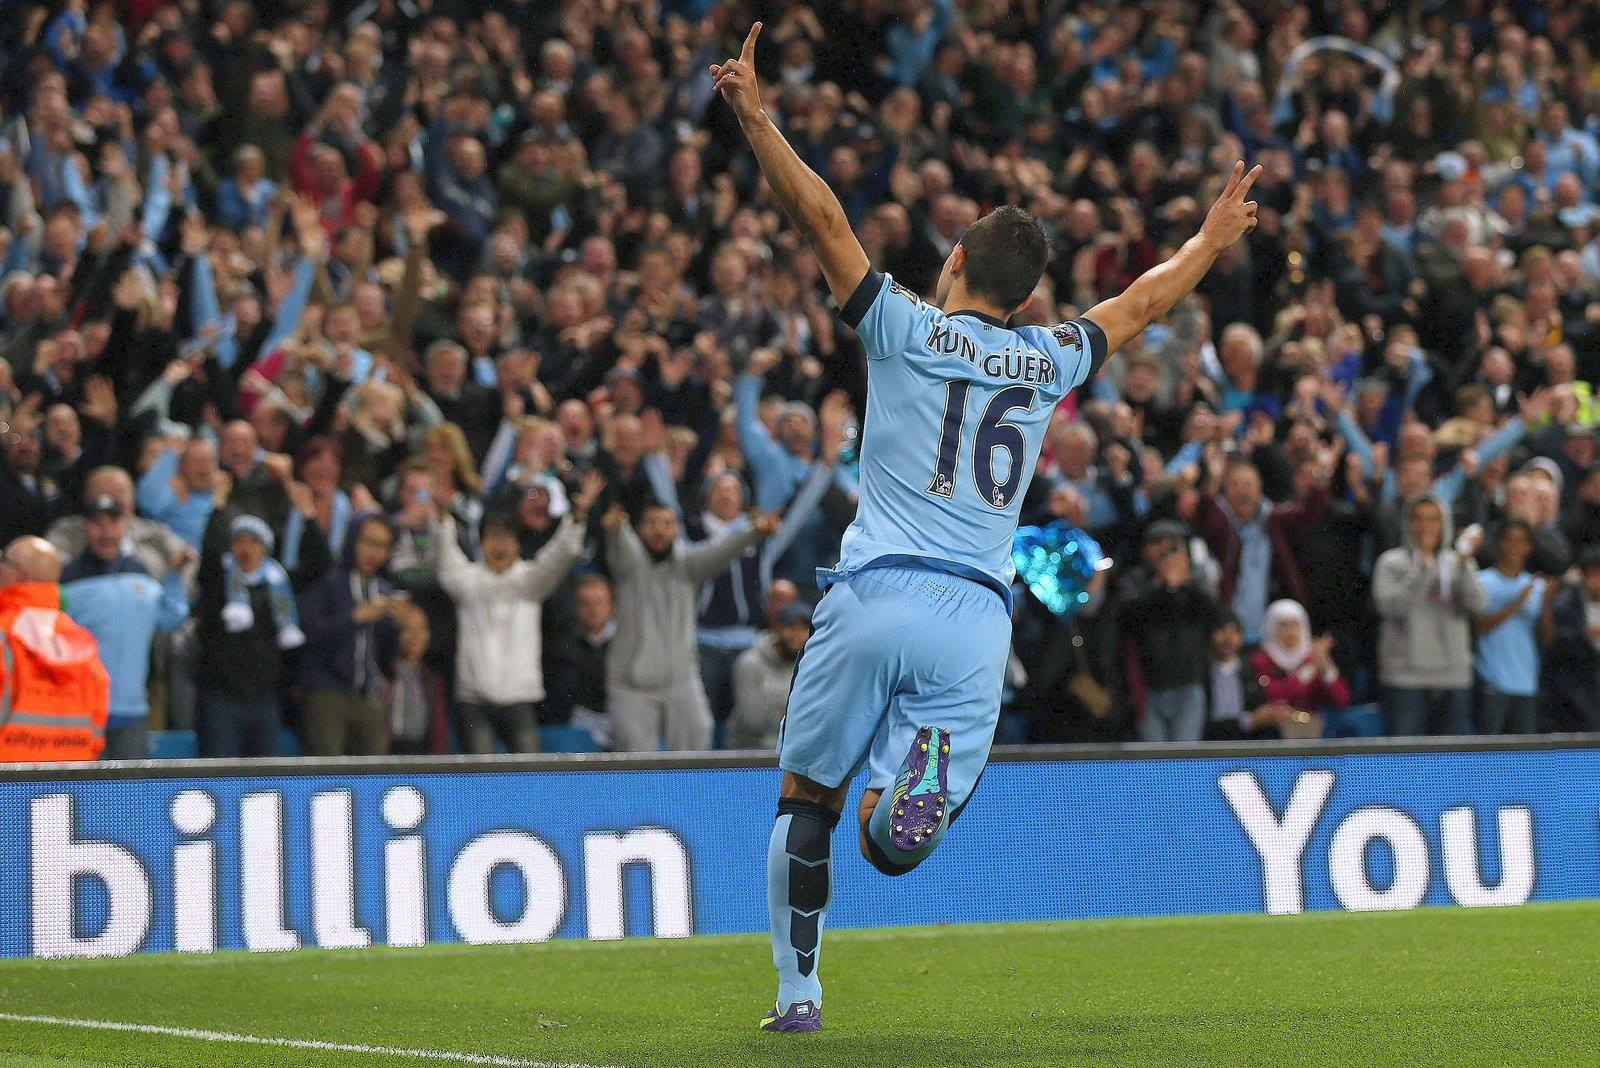 Same again Sergio - Aguero celebrates scoring City's 3rd goal in the 3-1 win over Liverpool in August. Courtesy@MCFC